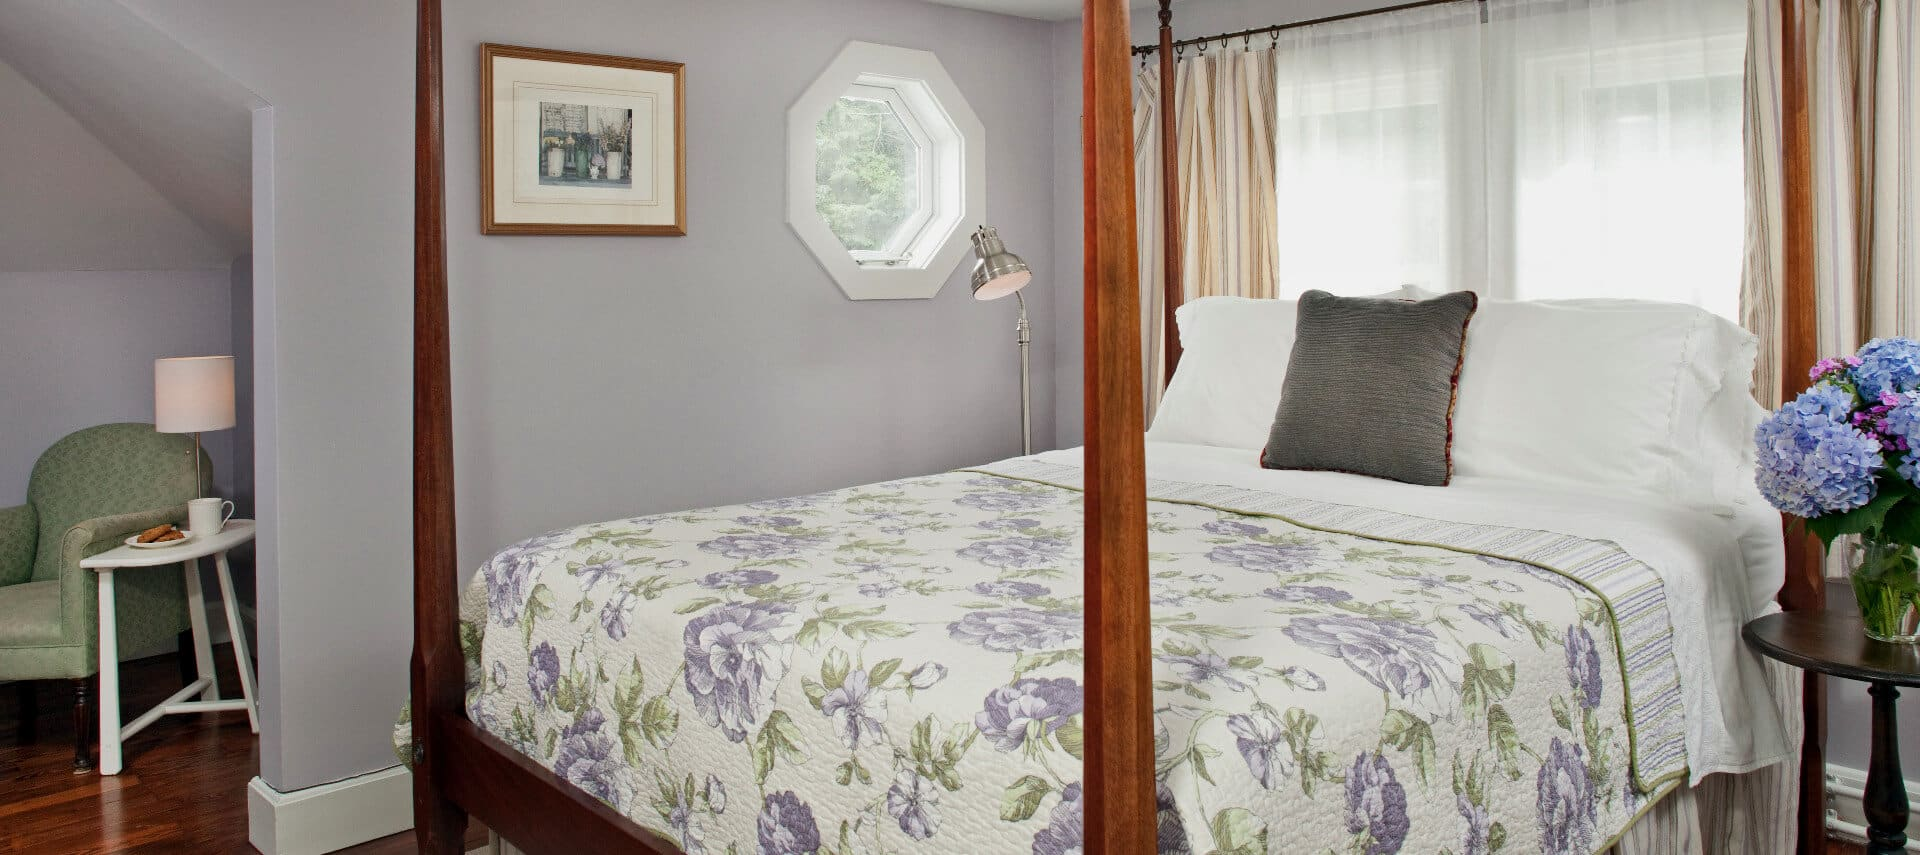 Bedroom painted in pale lavender with a cherry four-post bed made up in a lavender patterned cover.